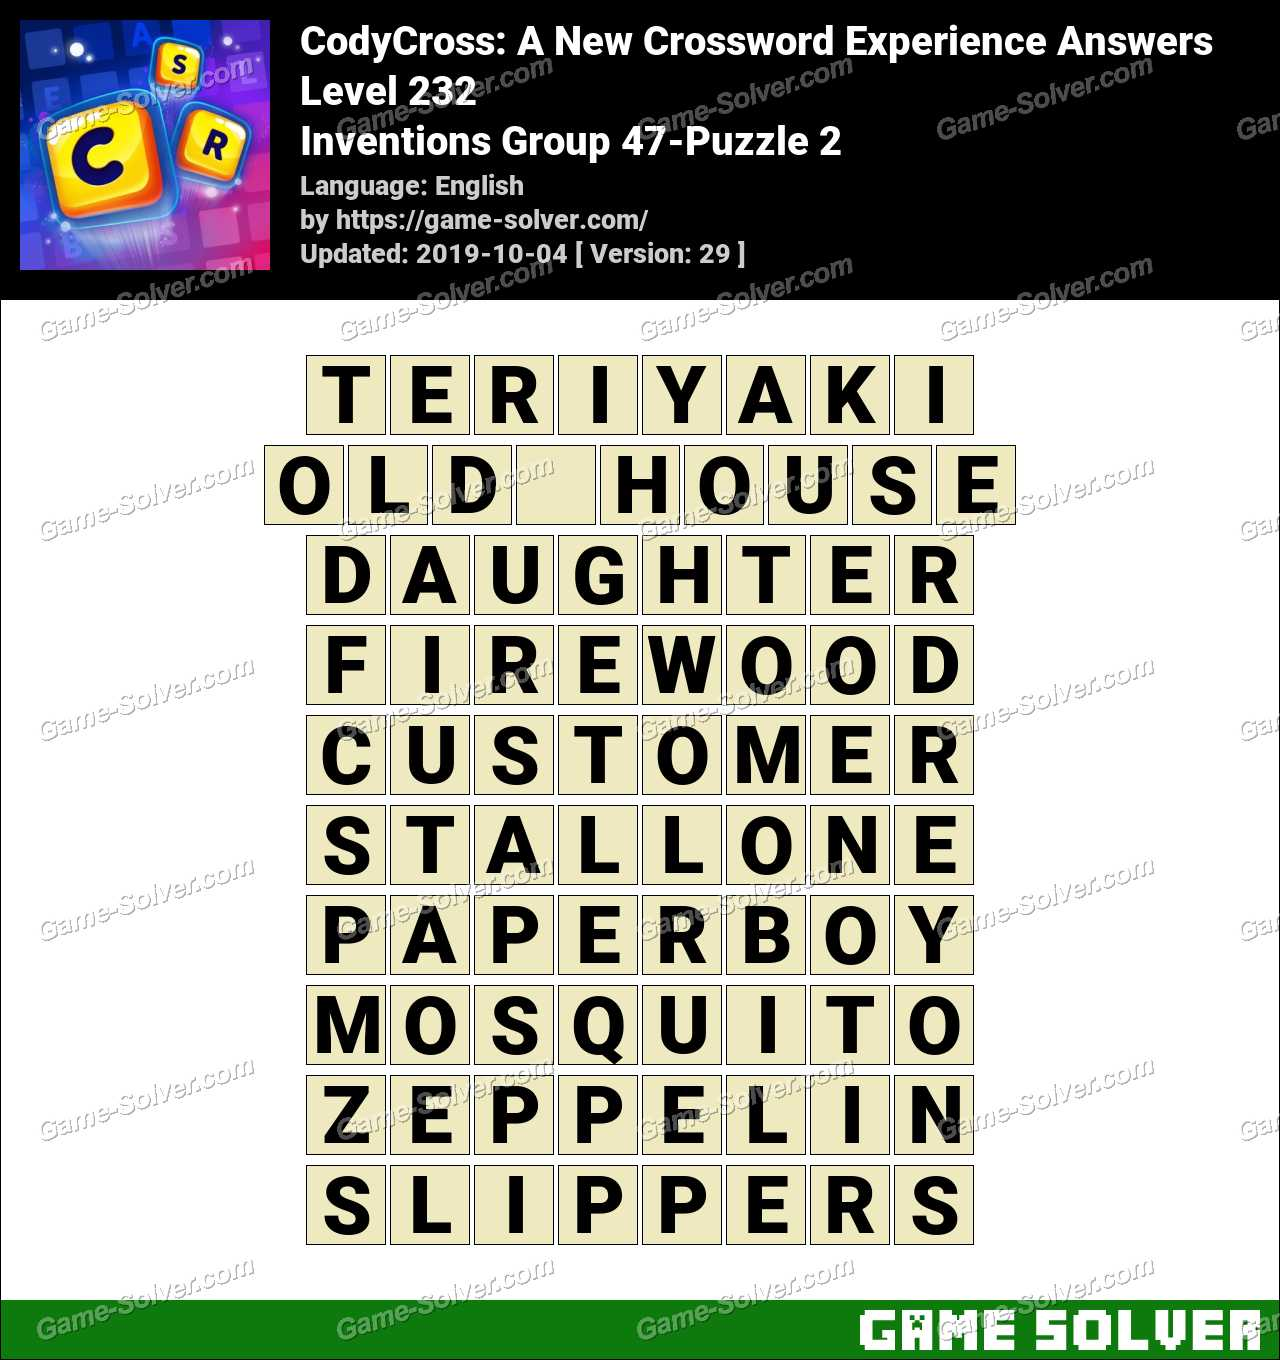 CodyCross Inventions Group 47-Puzzle 2 Answers